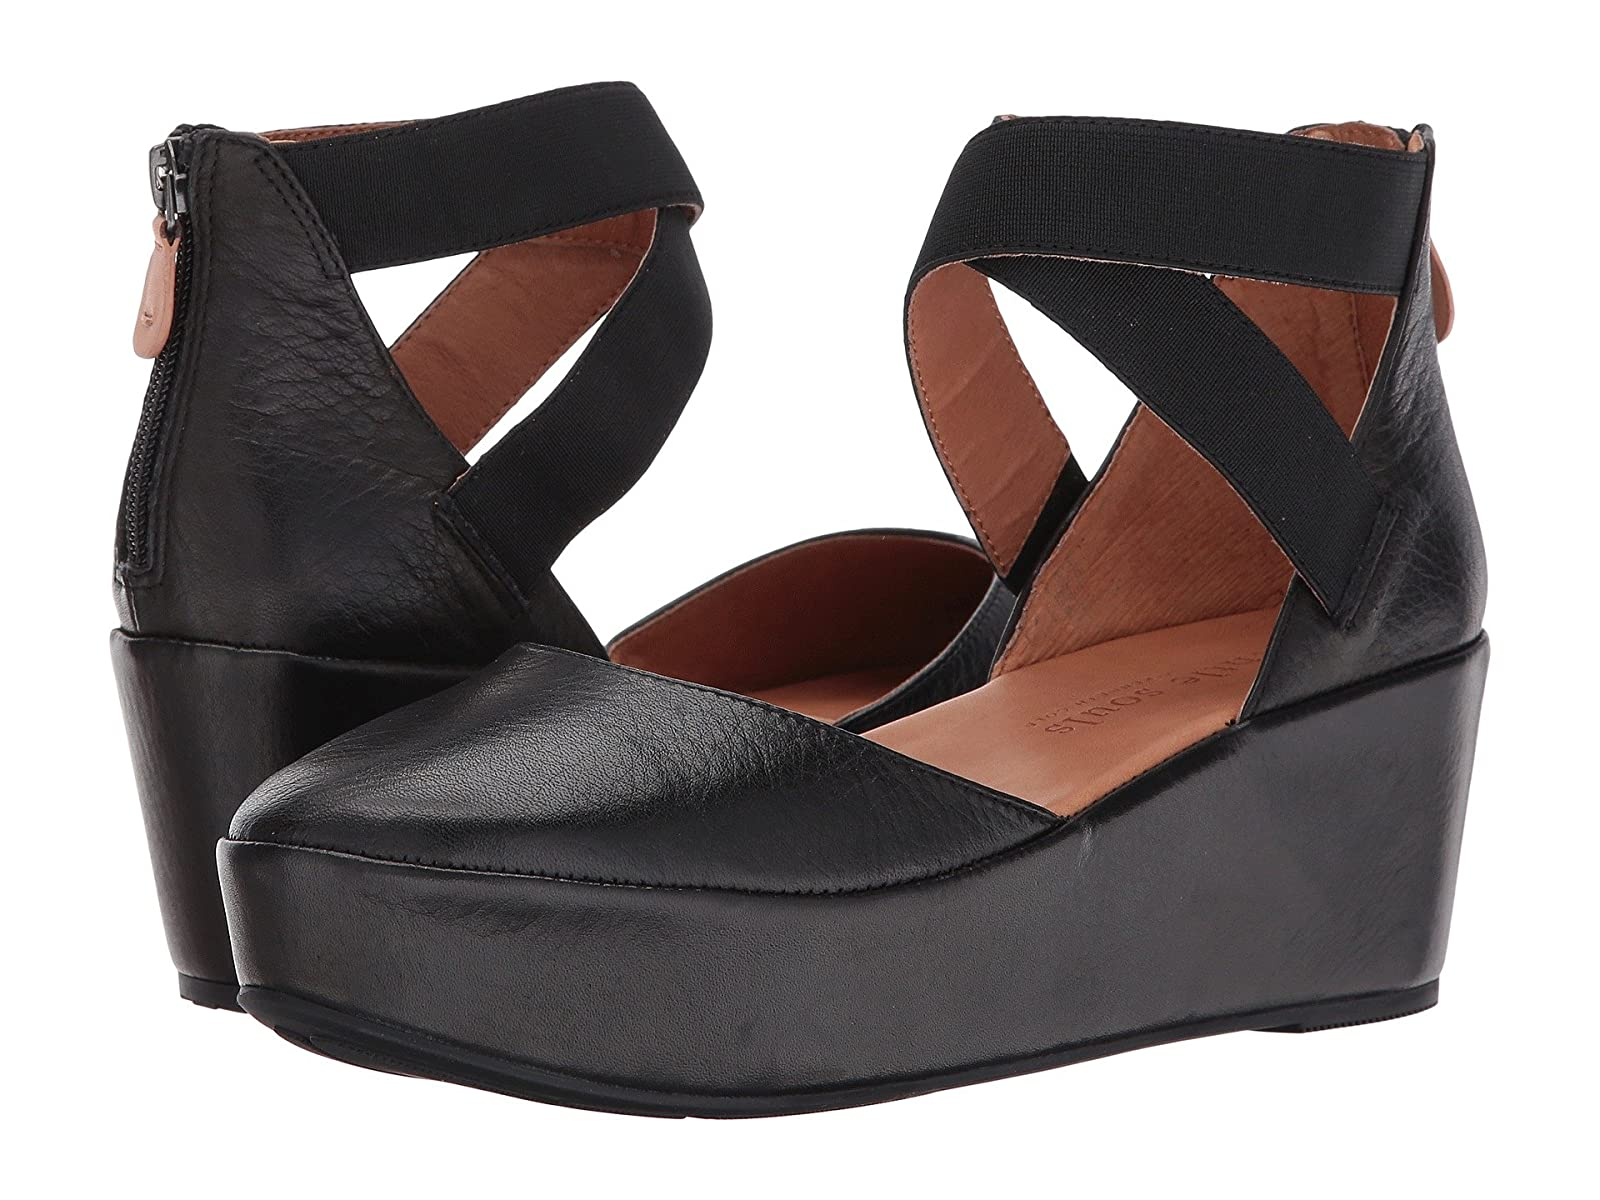 Gentle Souls by Kenneth Cole NyssaAtmospheric grades have affordable shoes